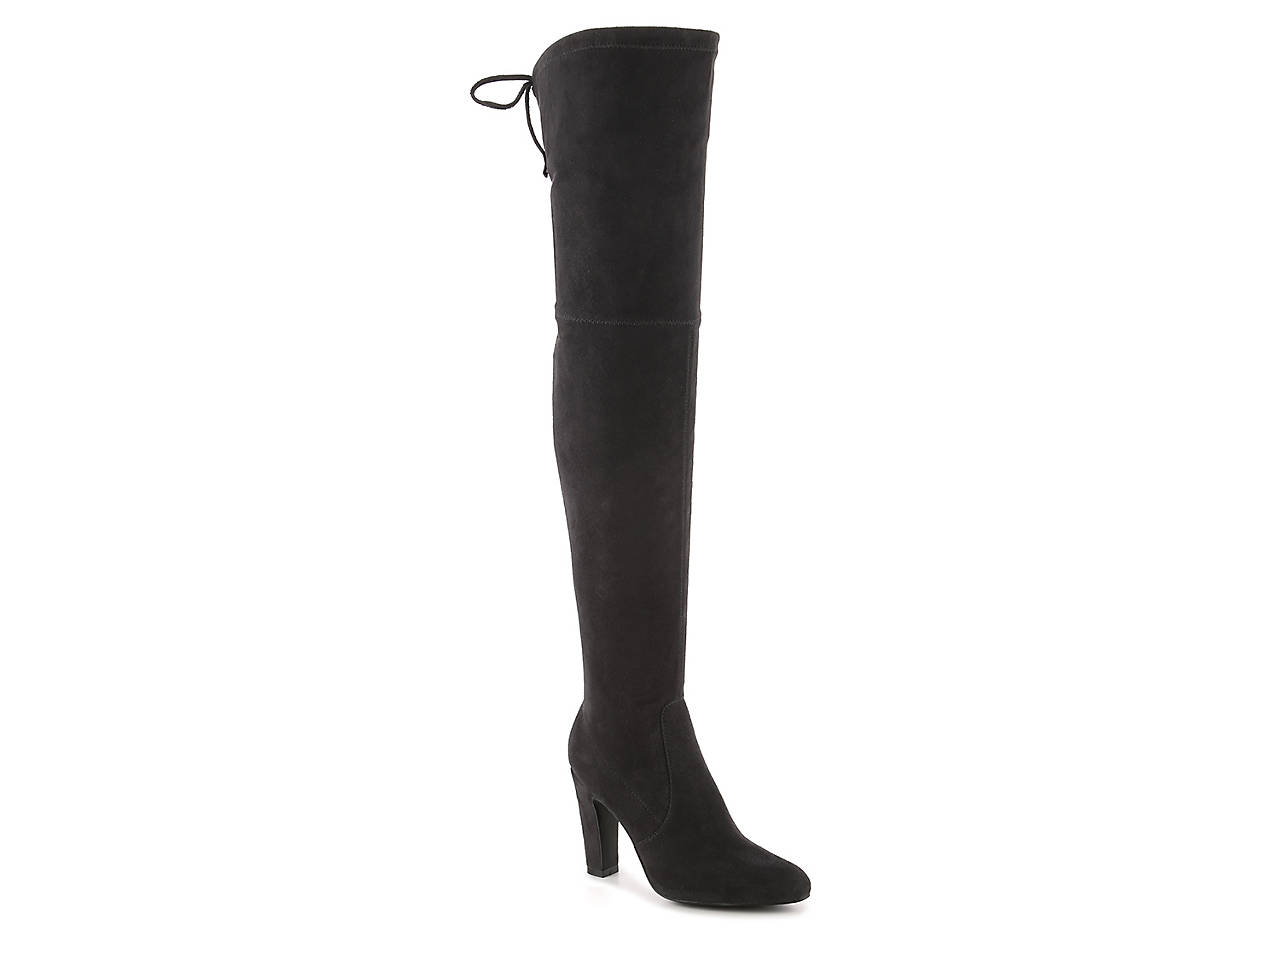 a4d5b8003c1325 Unisa Saranaa Over The Knee Boot Women s Shoes